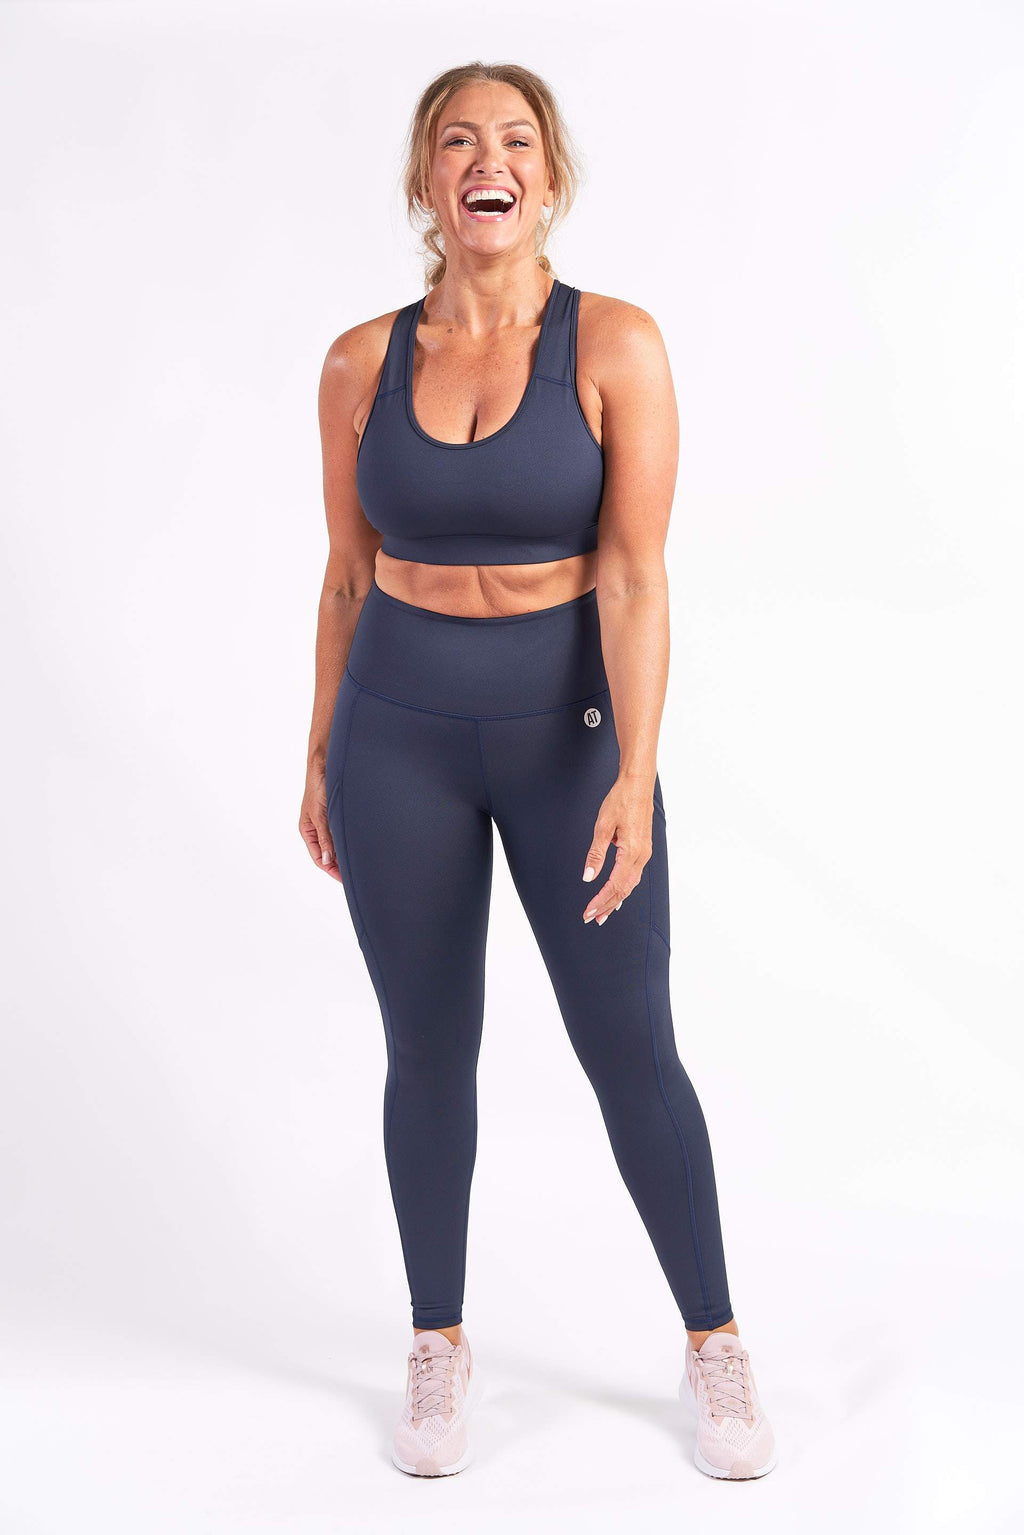 Smart Pocket Full Length Tight - Midnight from Active Truth USA